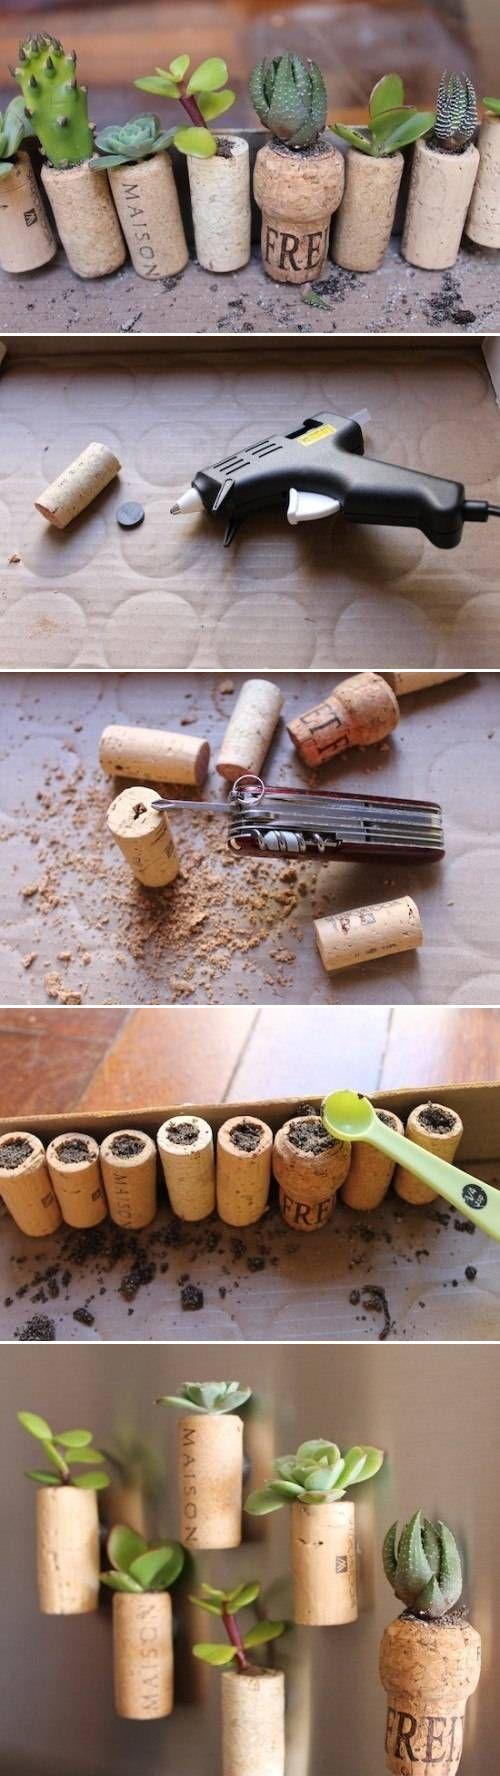 DIY Wine Cork Garden DIY Wine Cork Garden